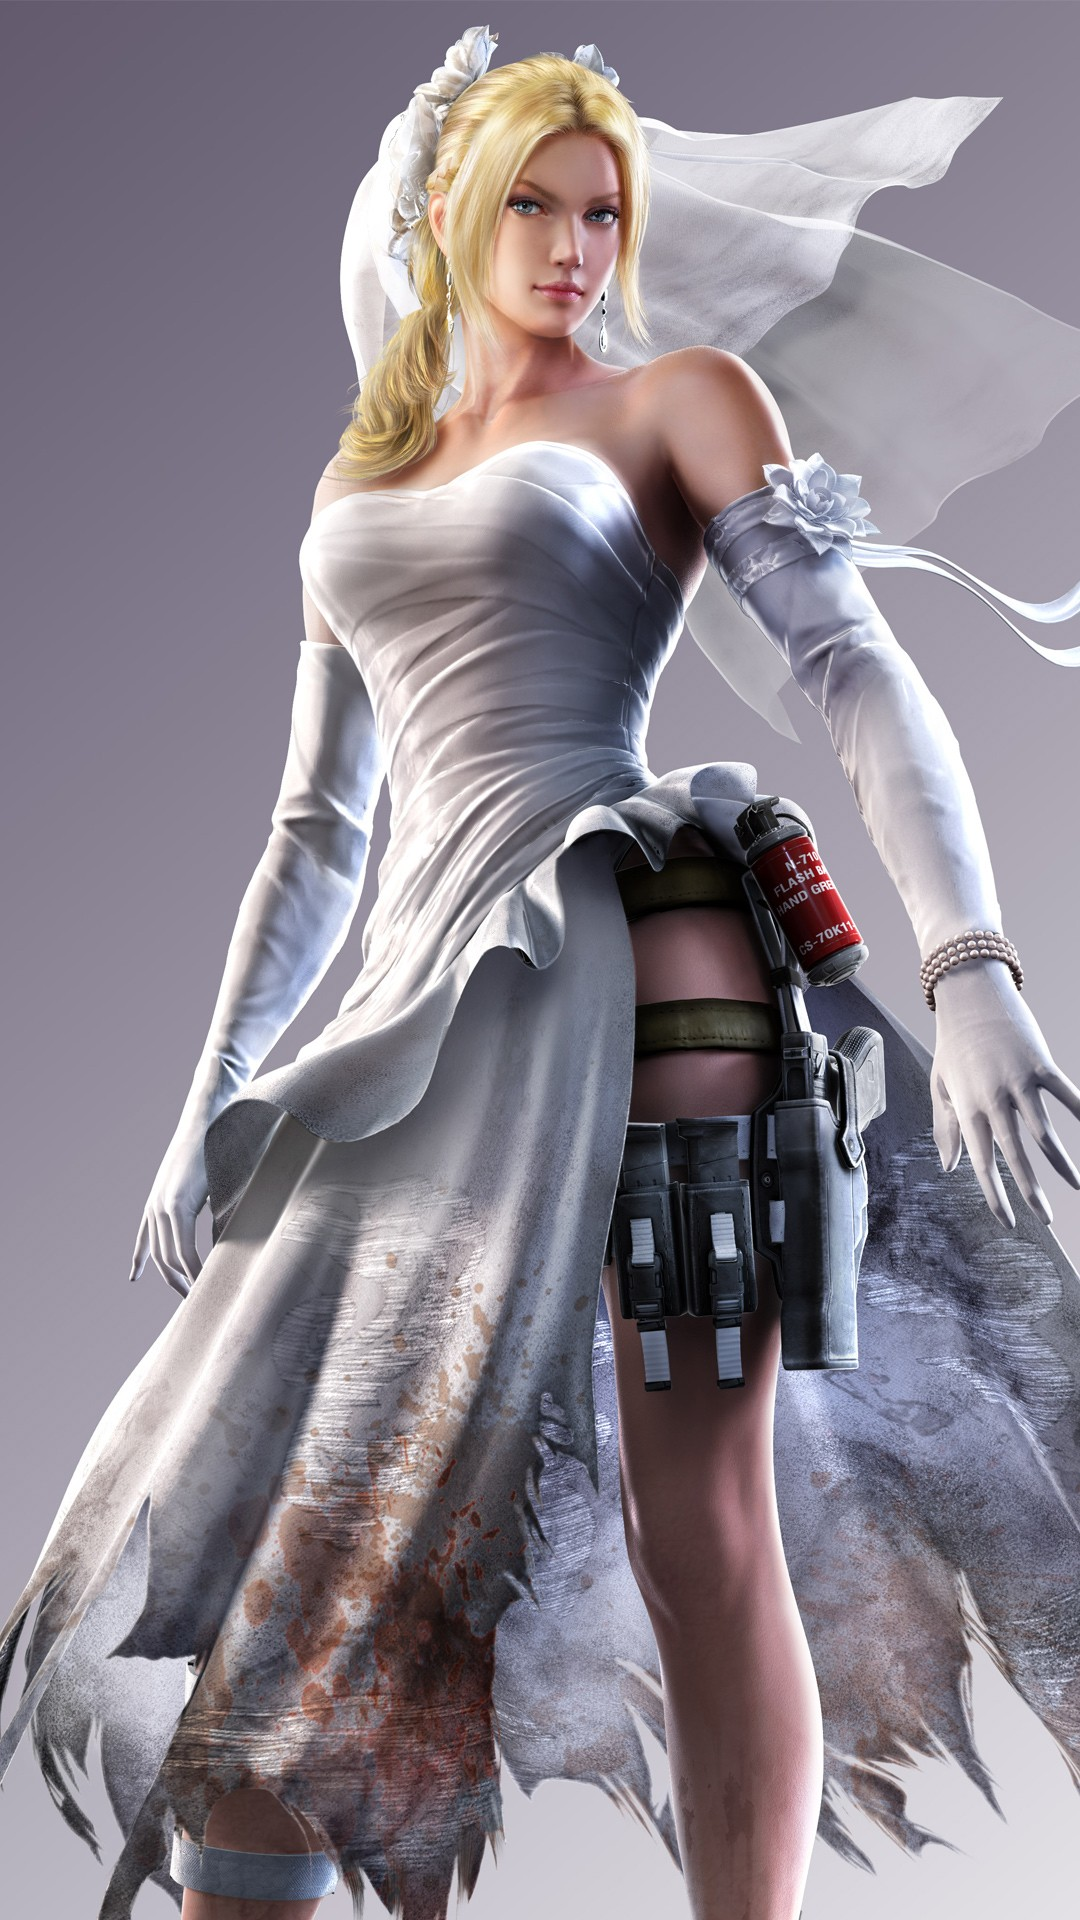 Girl Wallpaper For Iphone 4 Street Fighter X Tekken Nina Williams Wallpapers Hd